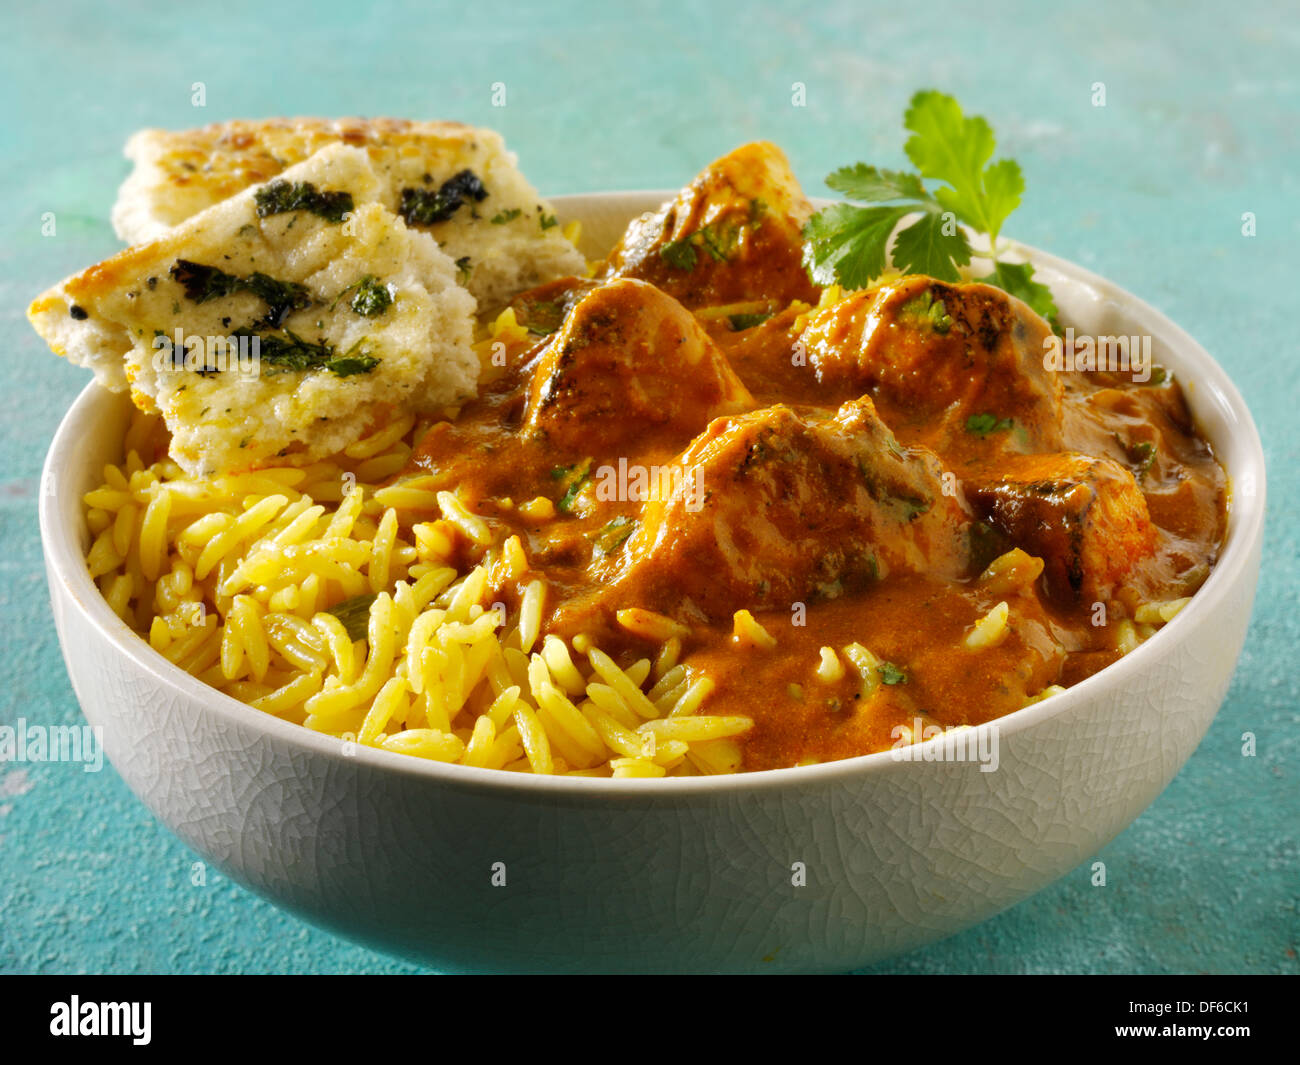 Chicken Bhuna Indian Chicken Curry - Stock Image